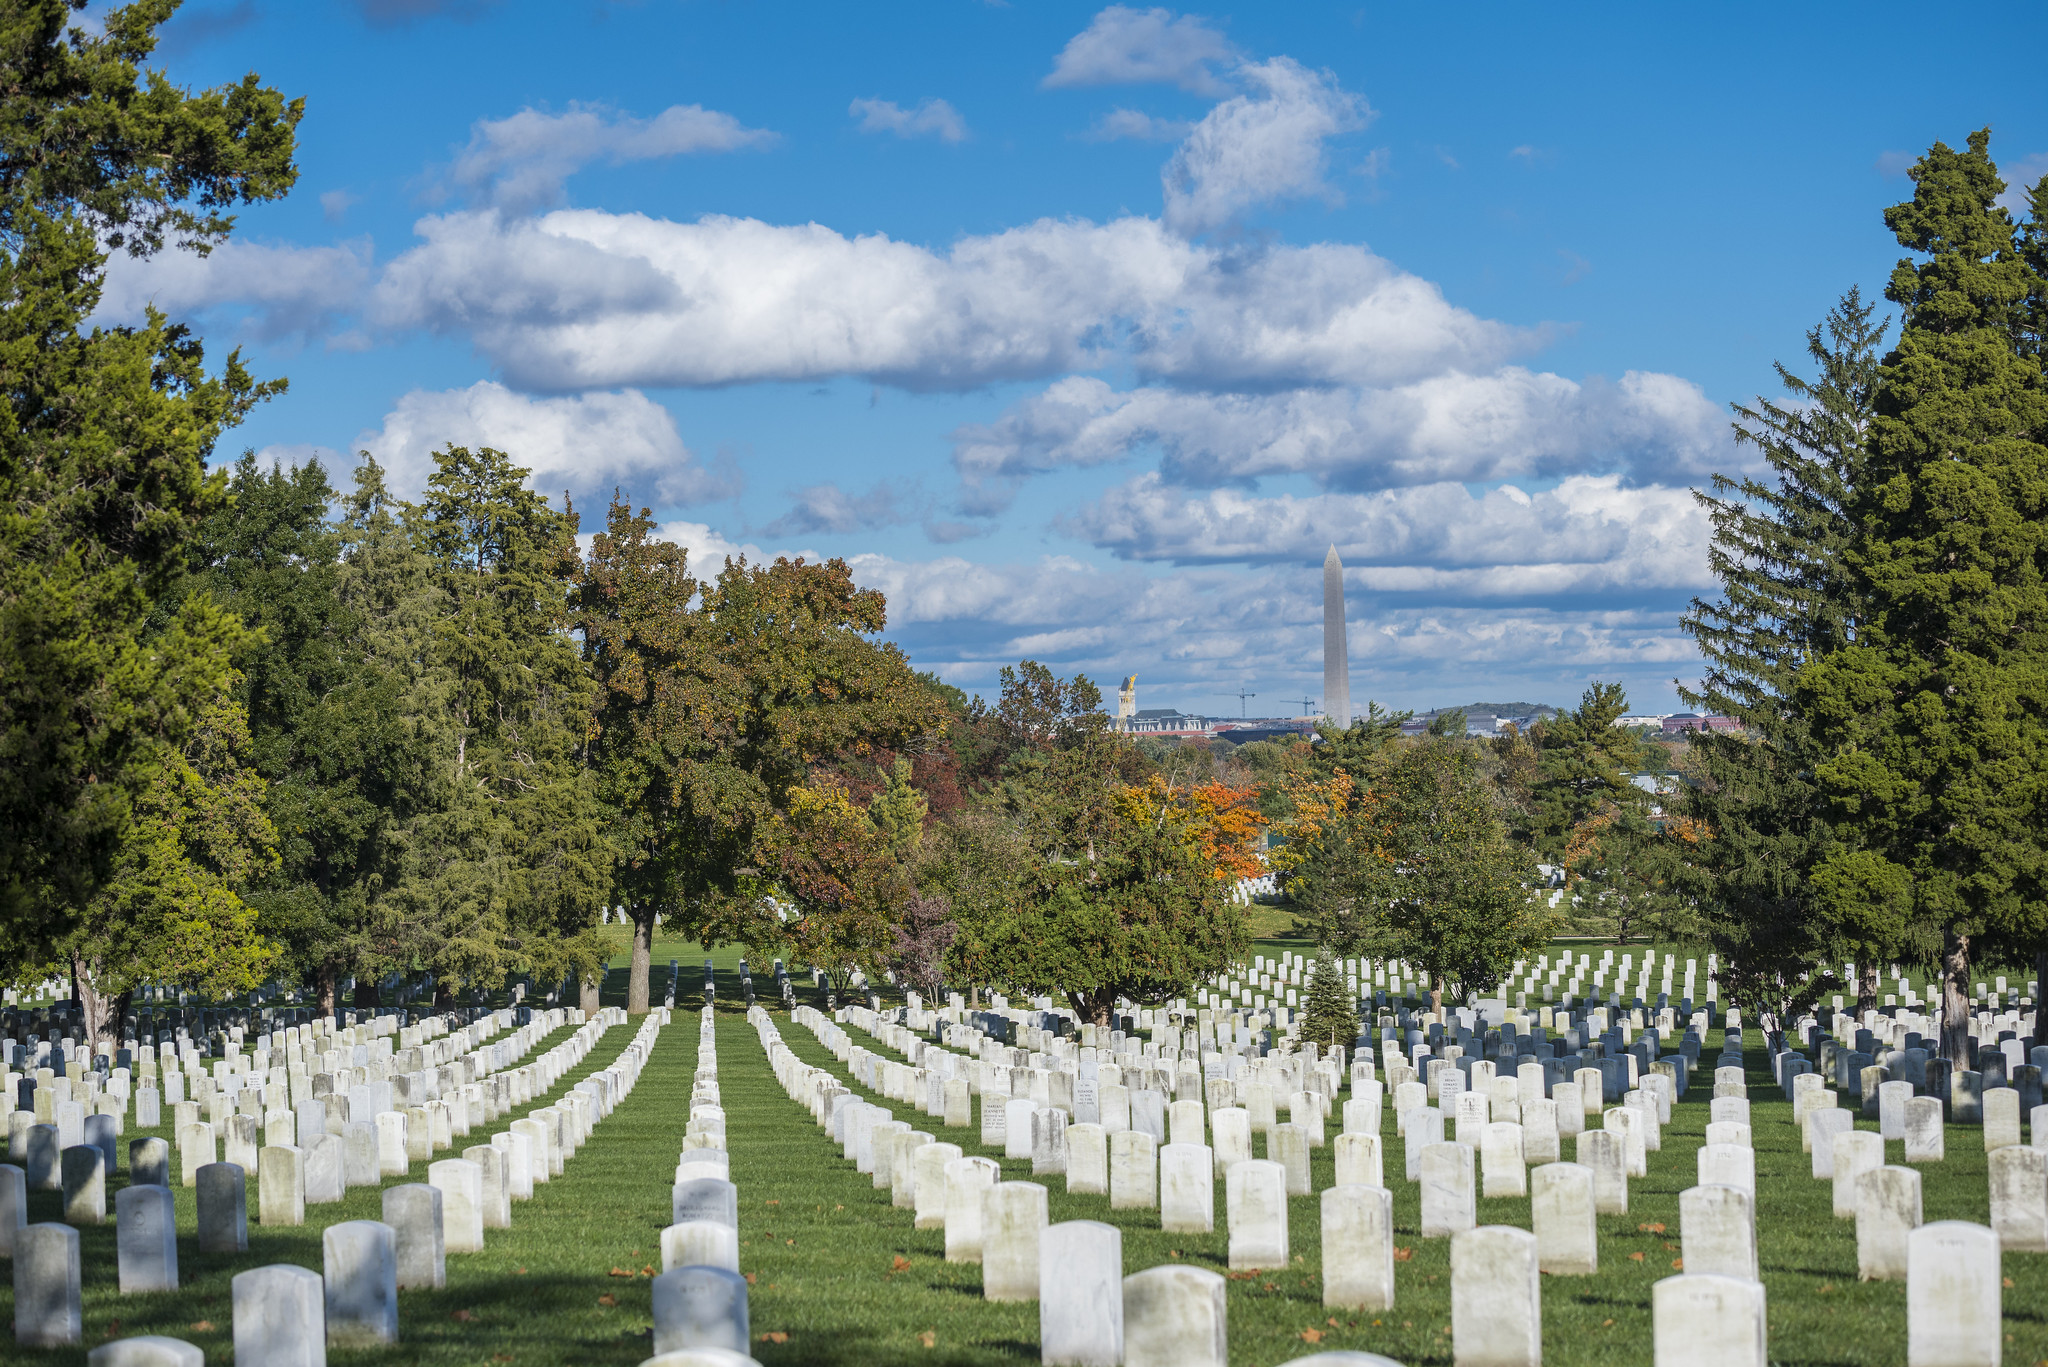 Rows of white gravestones at Arlington National Cemetery, with views of the Washington Monument in the distance